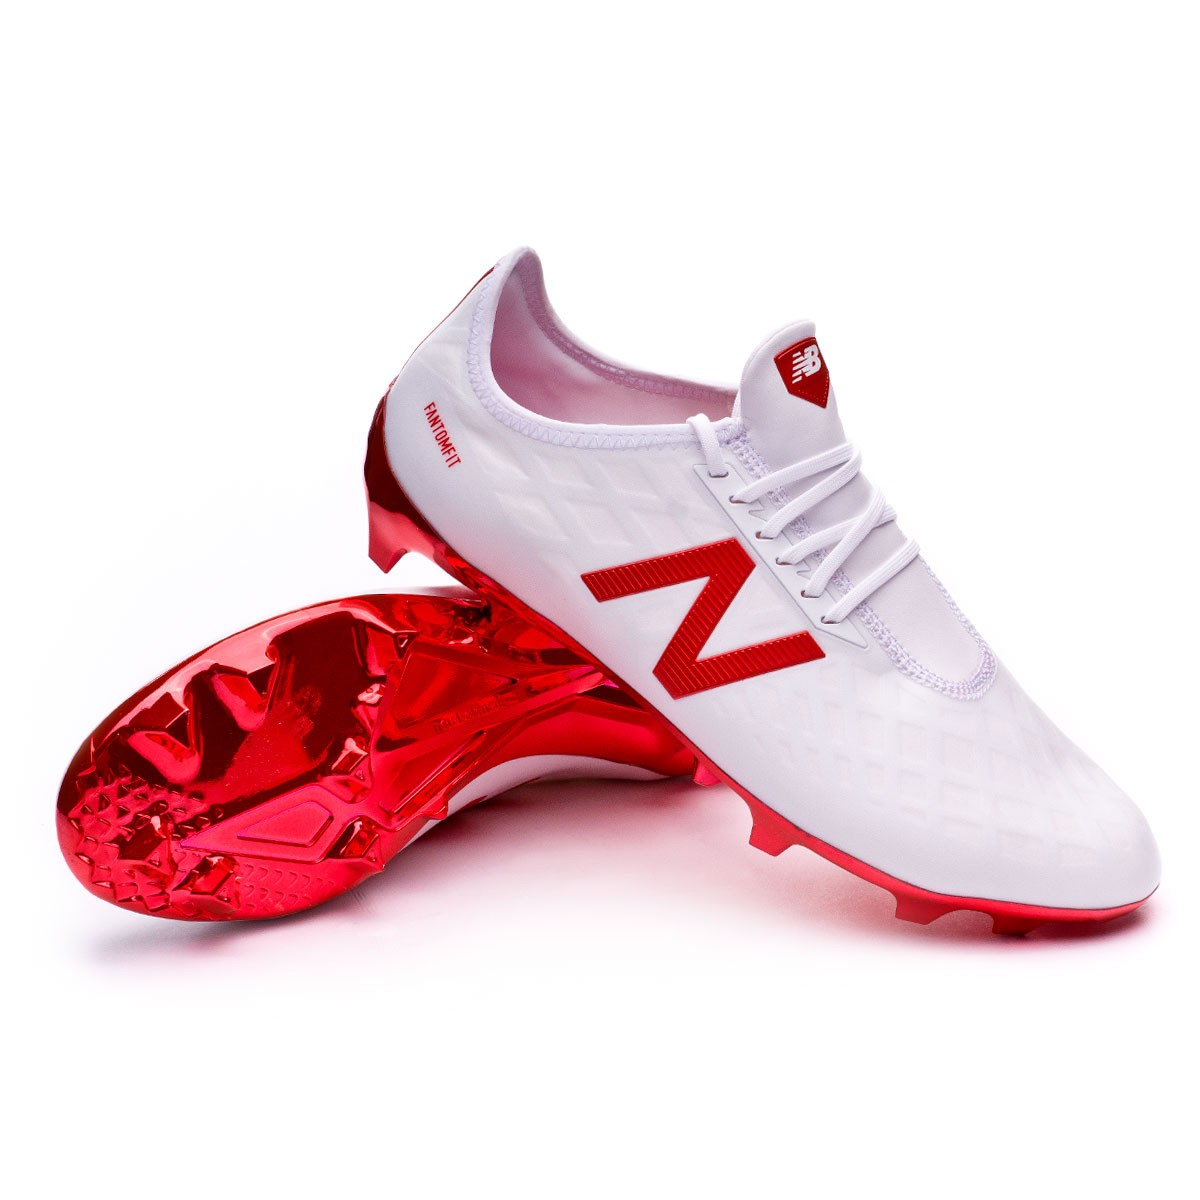 6a5c7941414 Football Boots New Balance Furon PRO FG White-Red - Tienda de fútbol ...